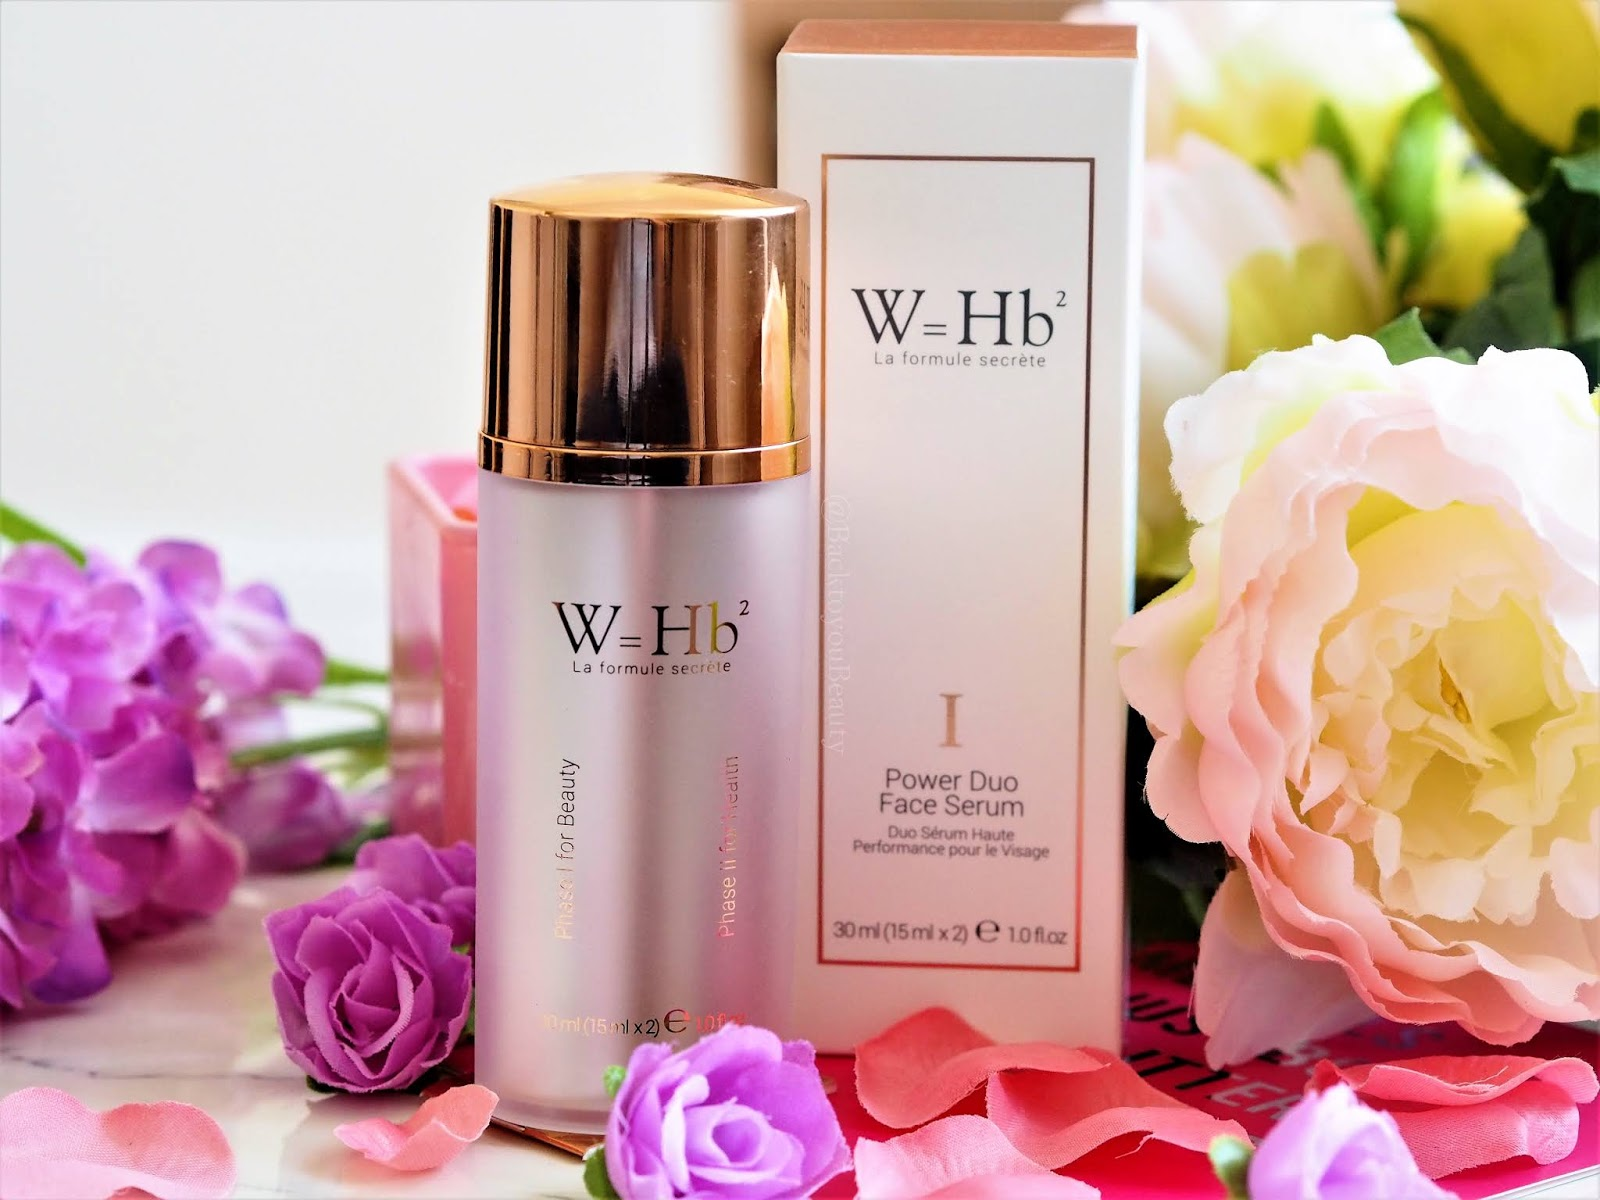 W=Hb2 Power Duo Face Serum.